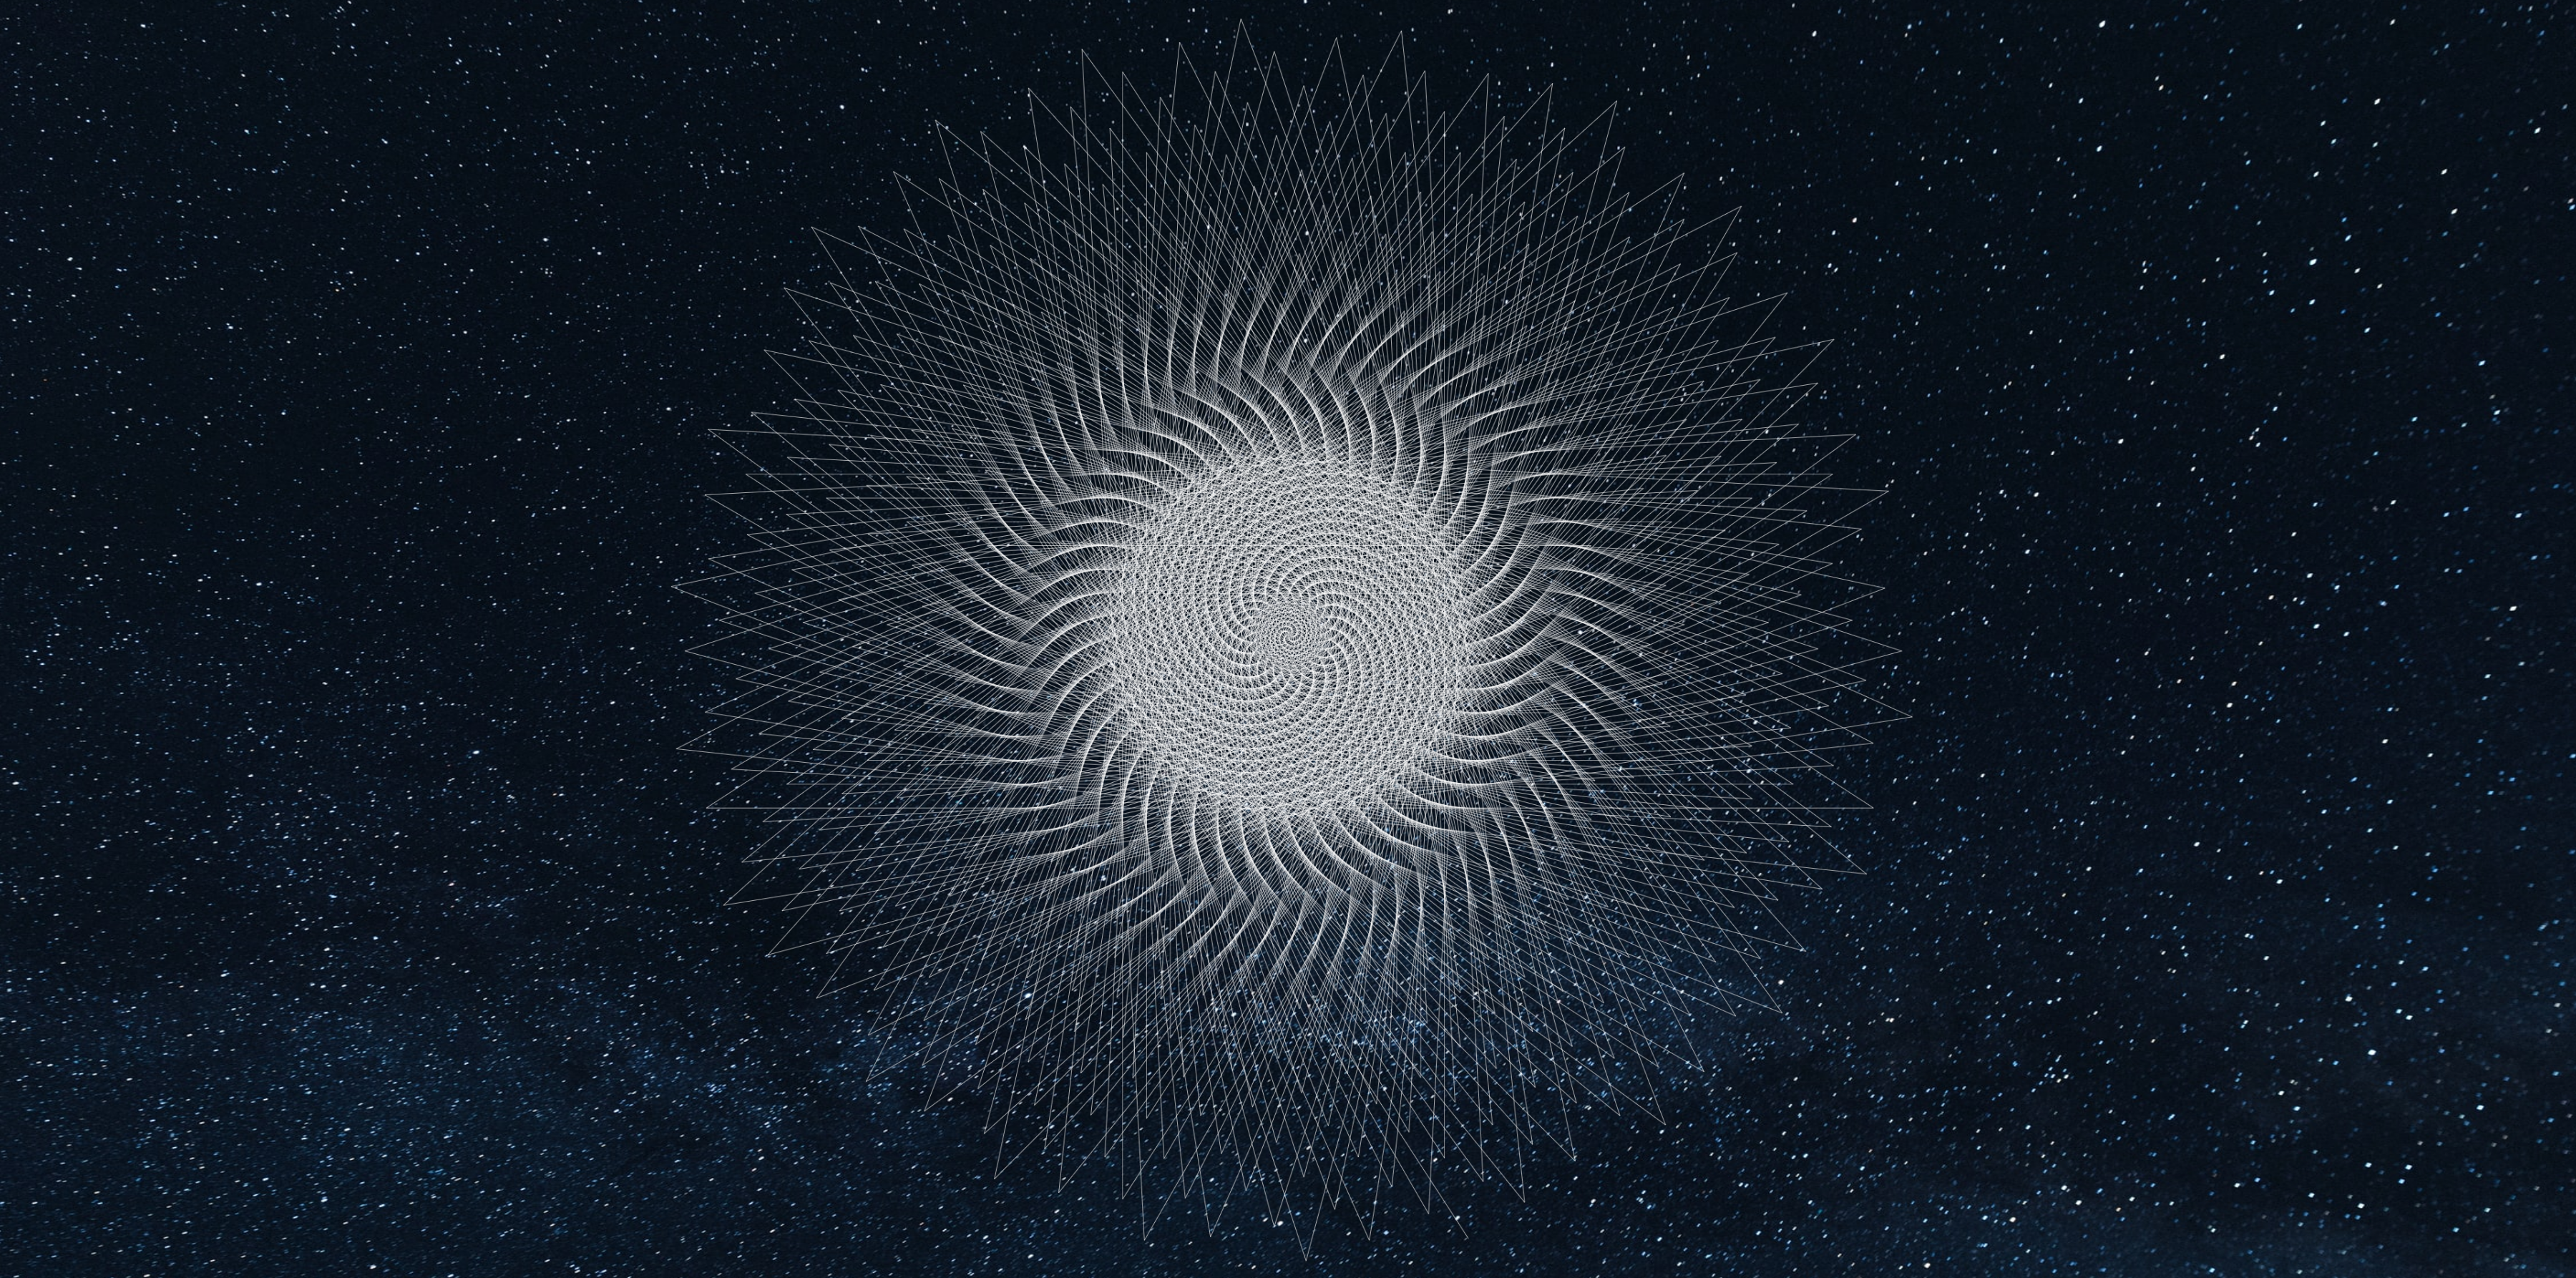 white geometric pattern against starry sky backgound